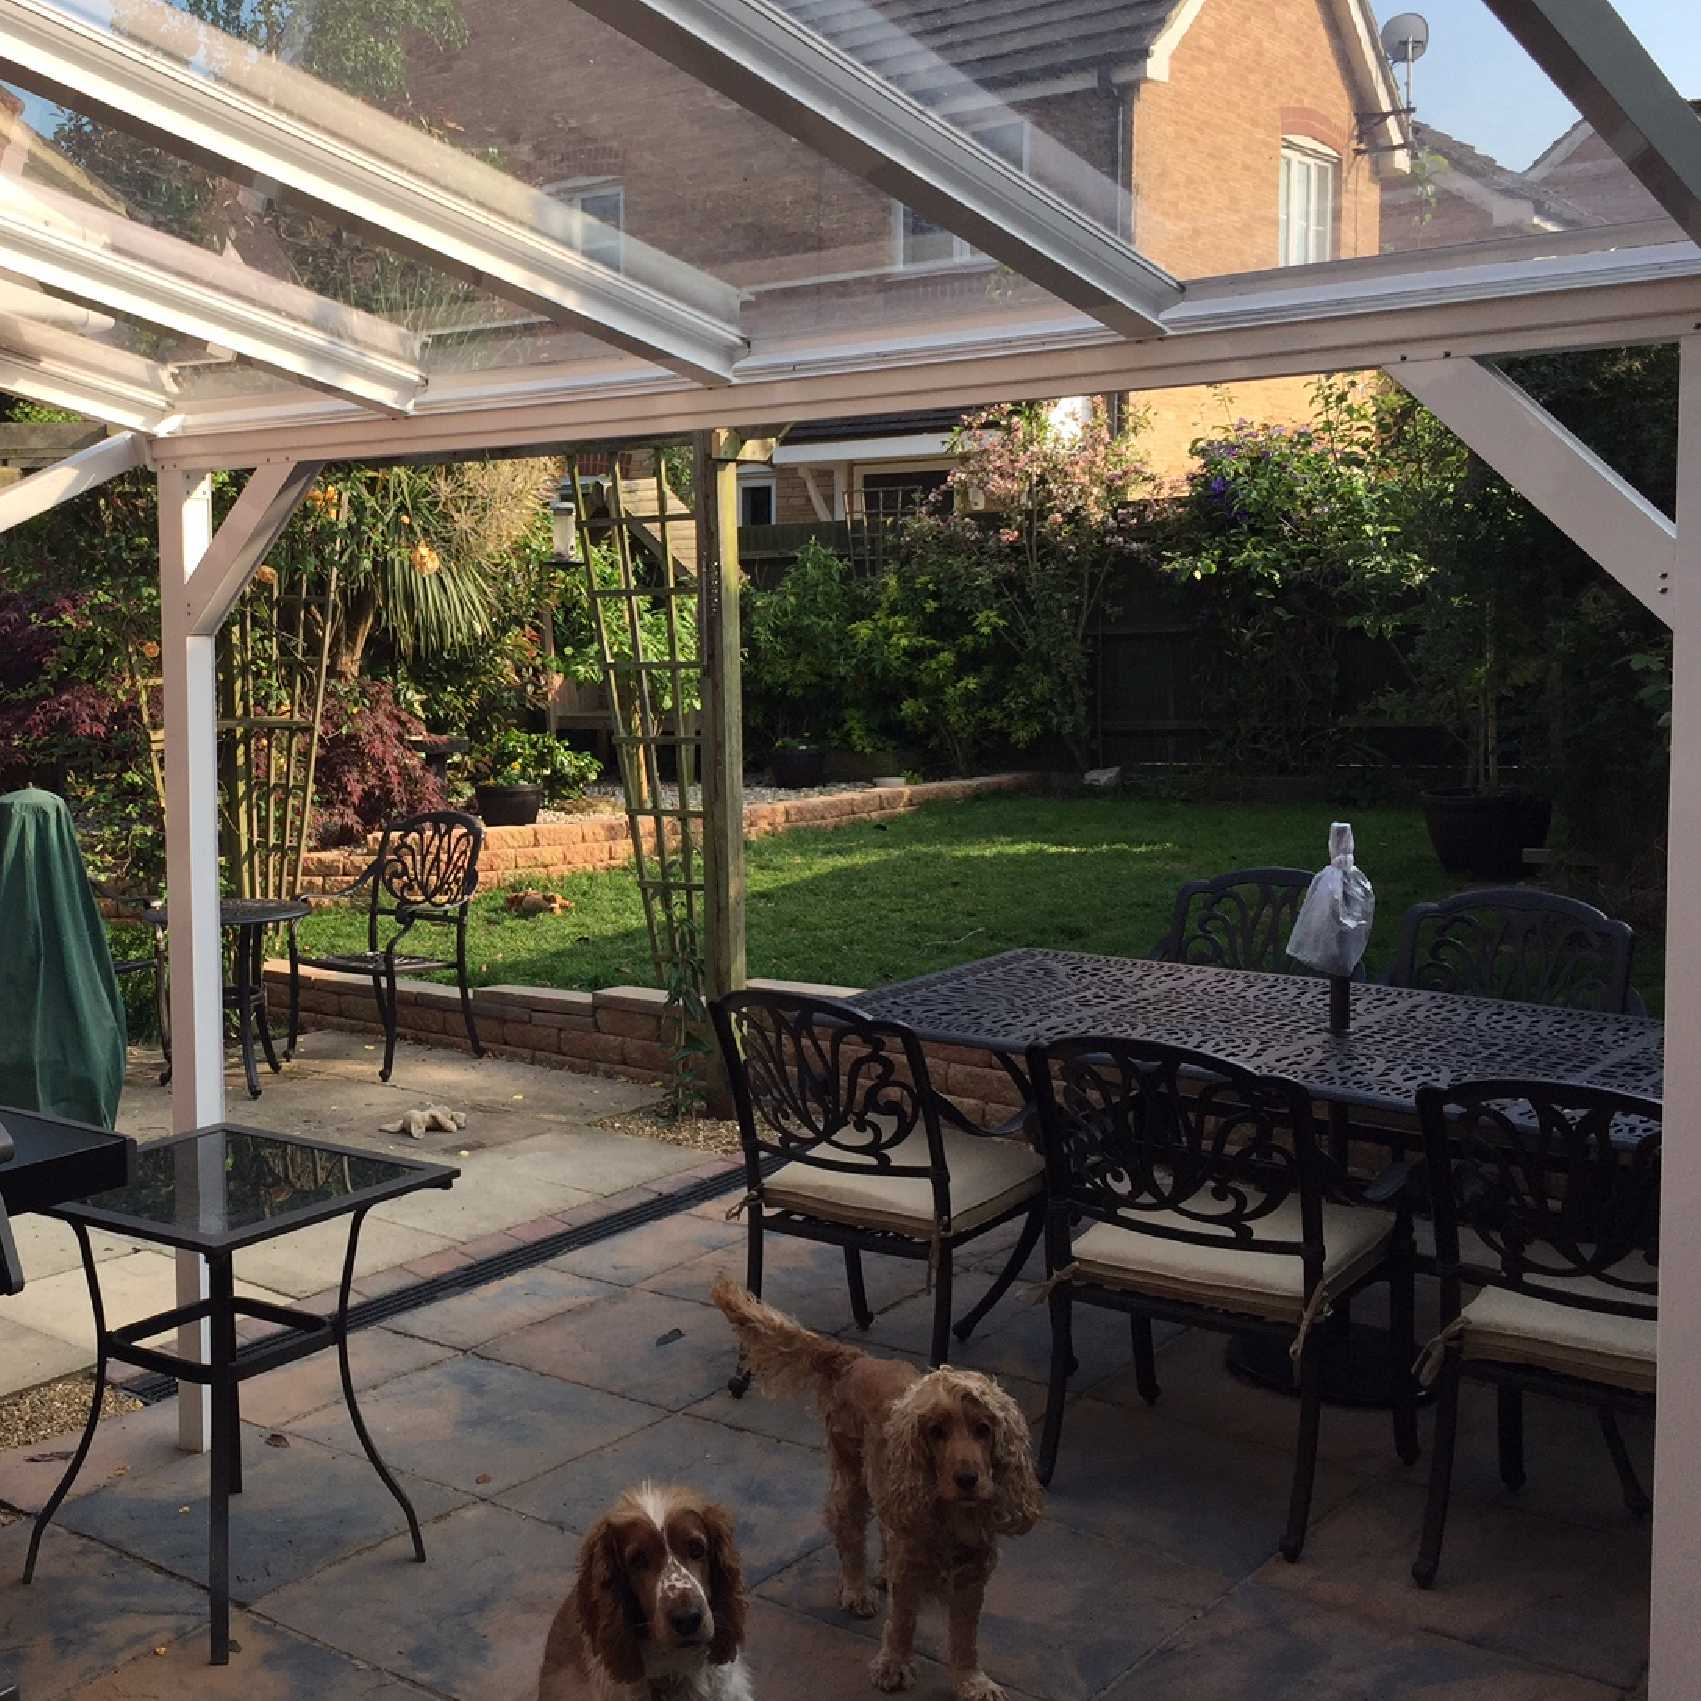 Affordable Omega Smart White Lean-To Canopy with 6mm Glass Clear Plate Polycarbonate Glazing - 6.3m (W) x 2.5m (P), (4) Supporting Posts